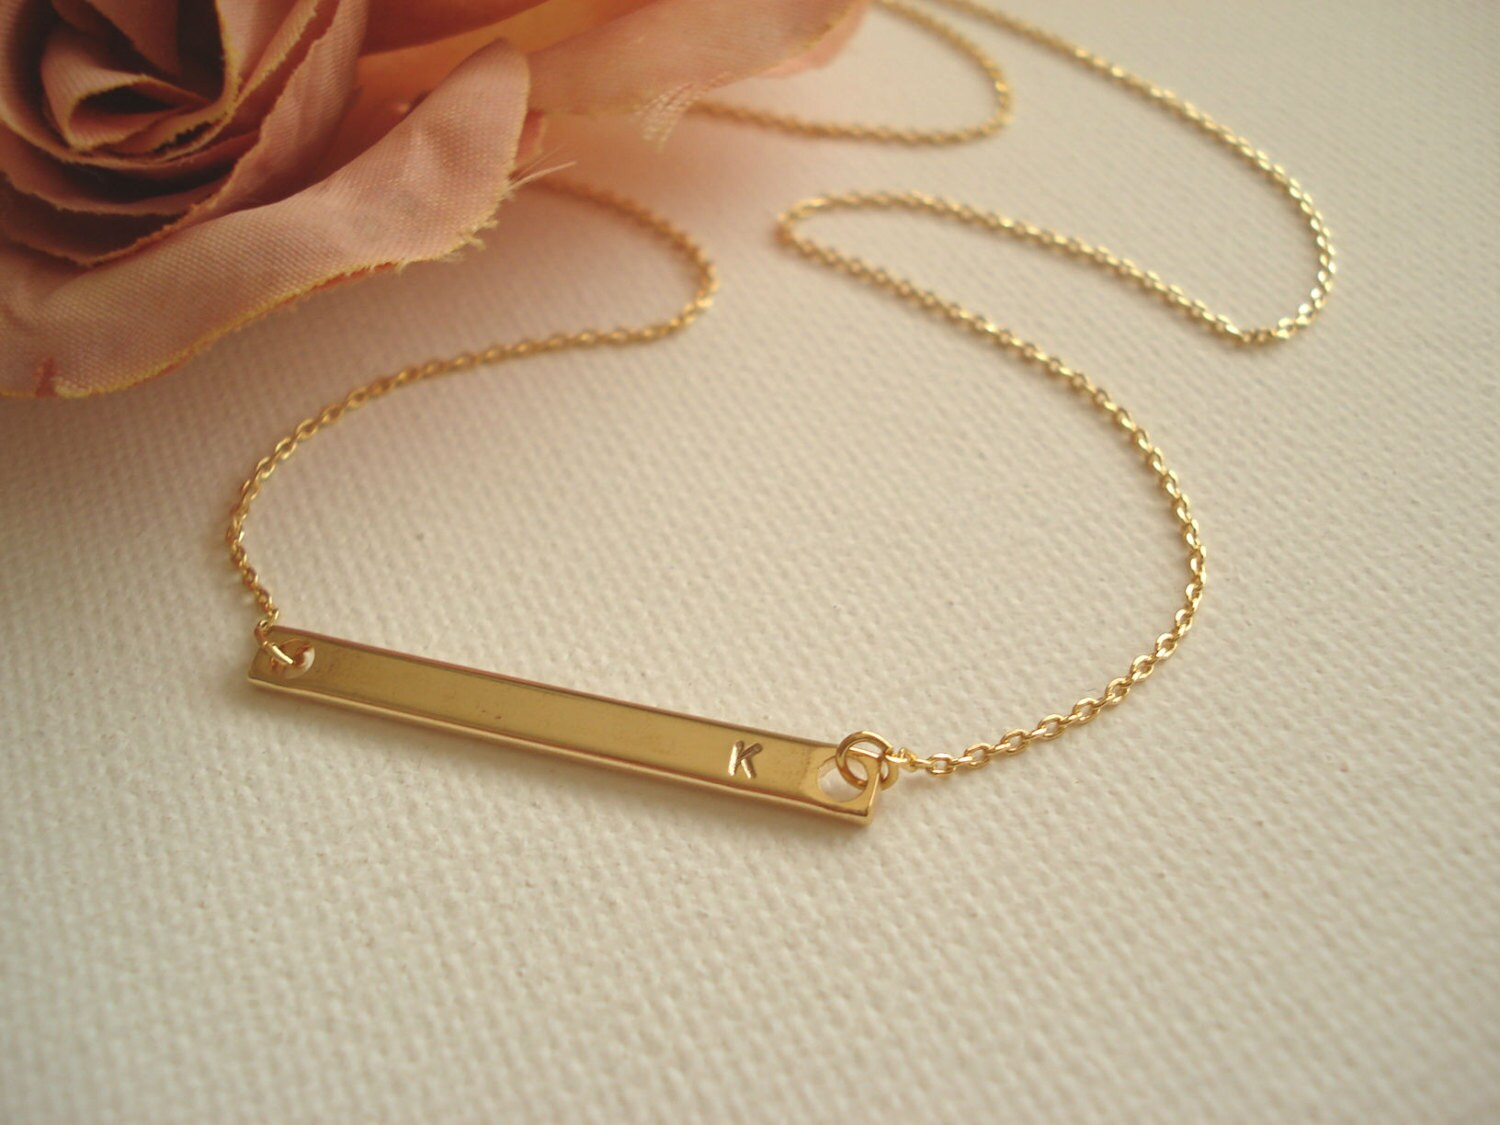 gold bar initial necklace celebrity inspired personalized. Black Bedroom Furniture Sets. Home Design Ideas